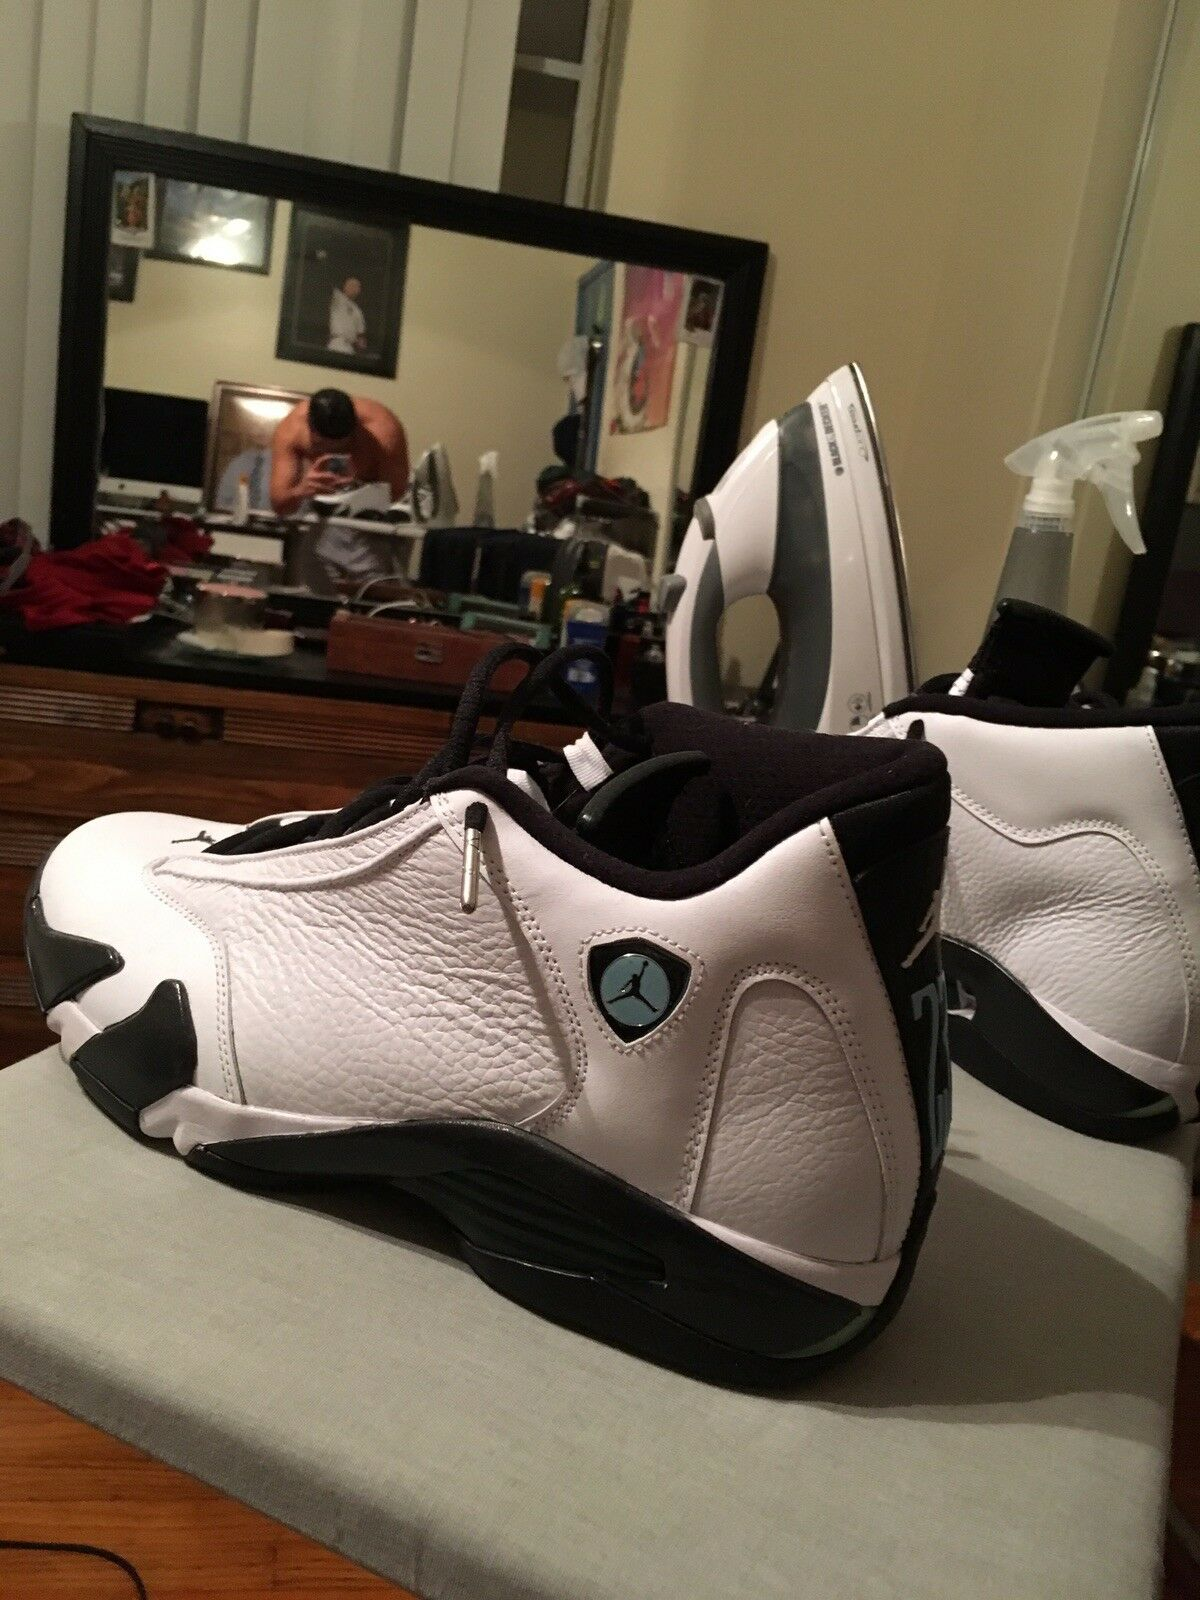 Jordan 14 oxy green low and Jordan 9 bred low , BOTH SHOES 200 OR BEST OFFER